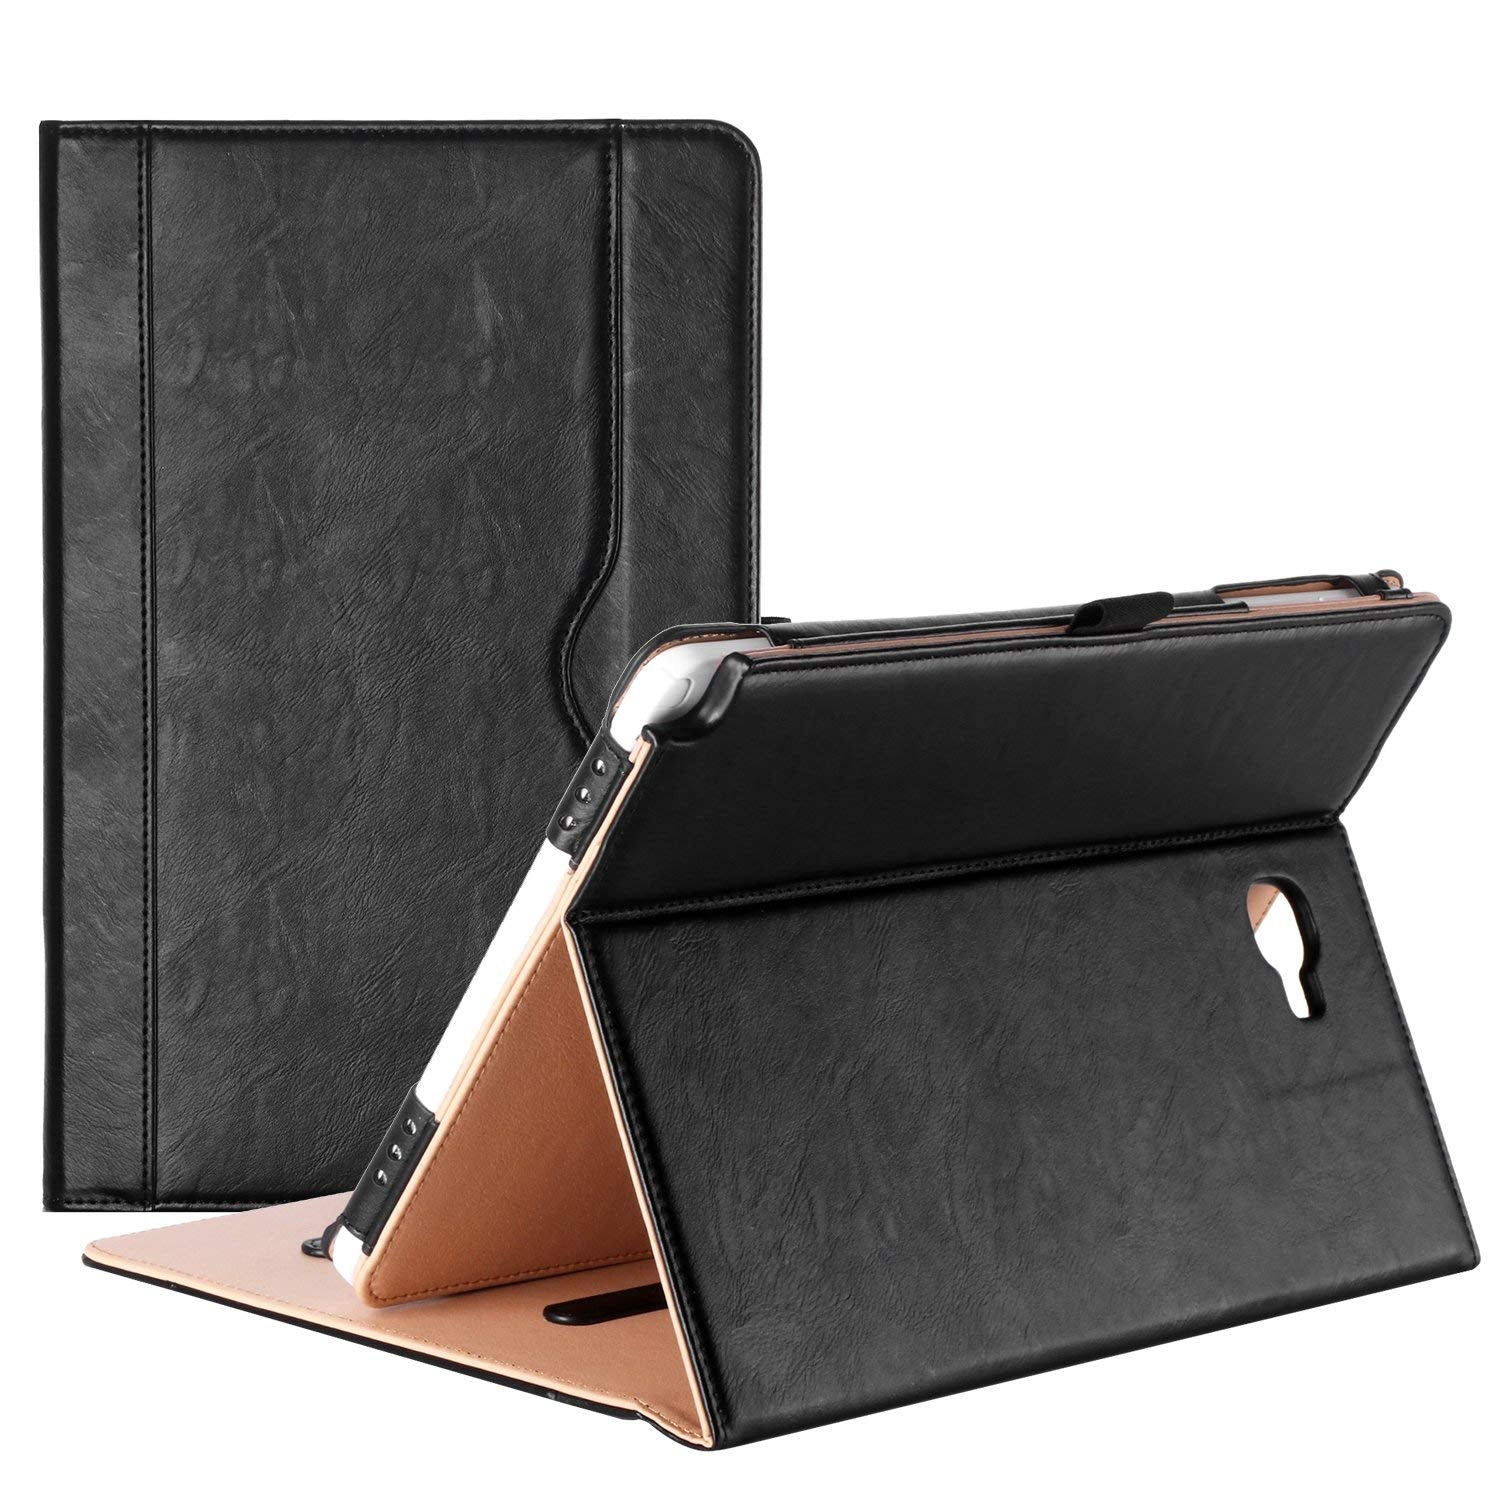 Galaxy Tab A 10.1 2016 P580 Leather Folio Case with S Pen